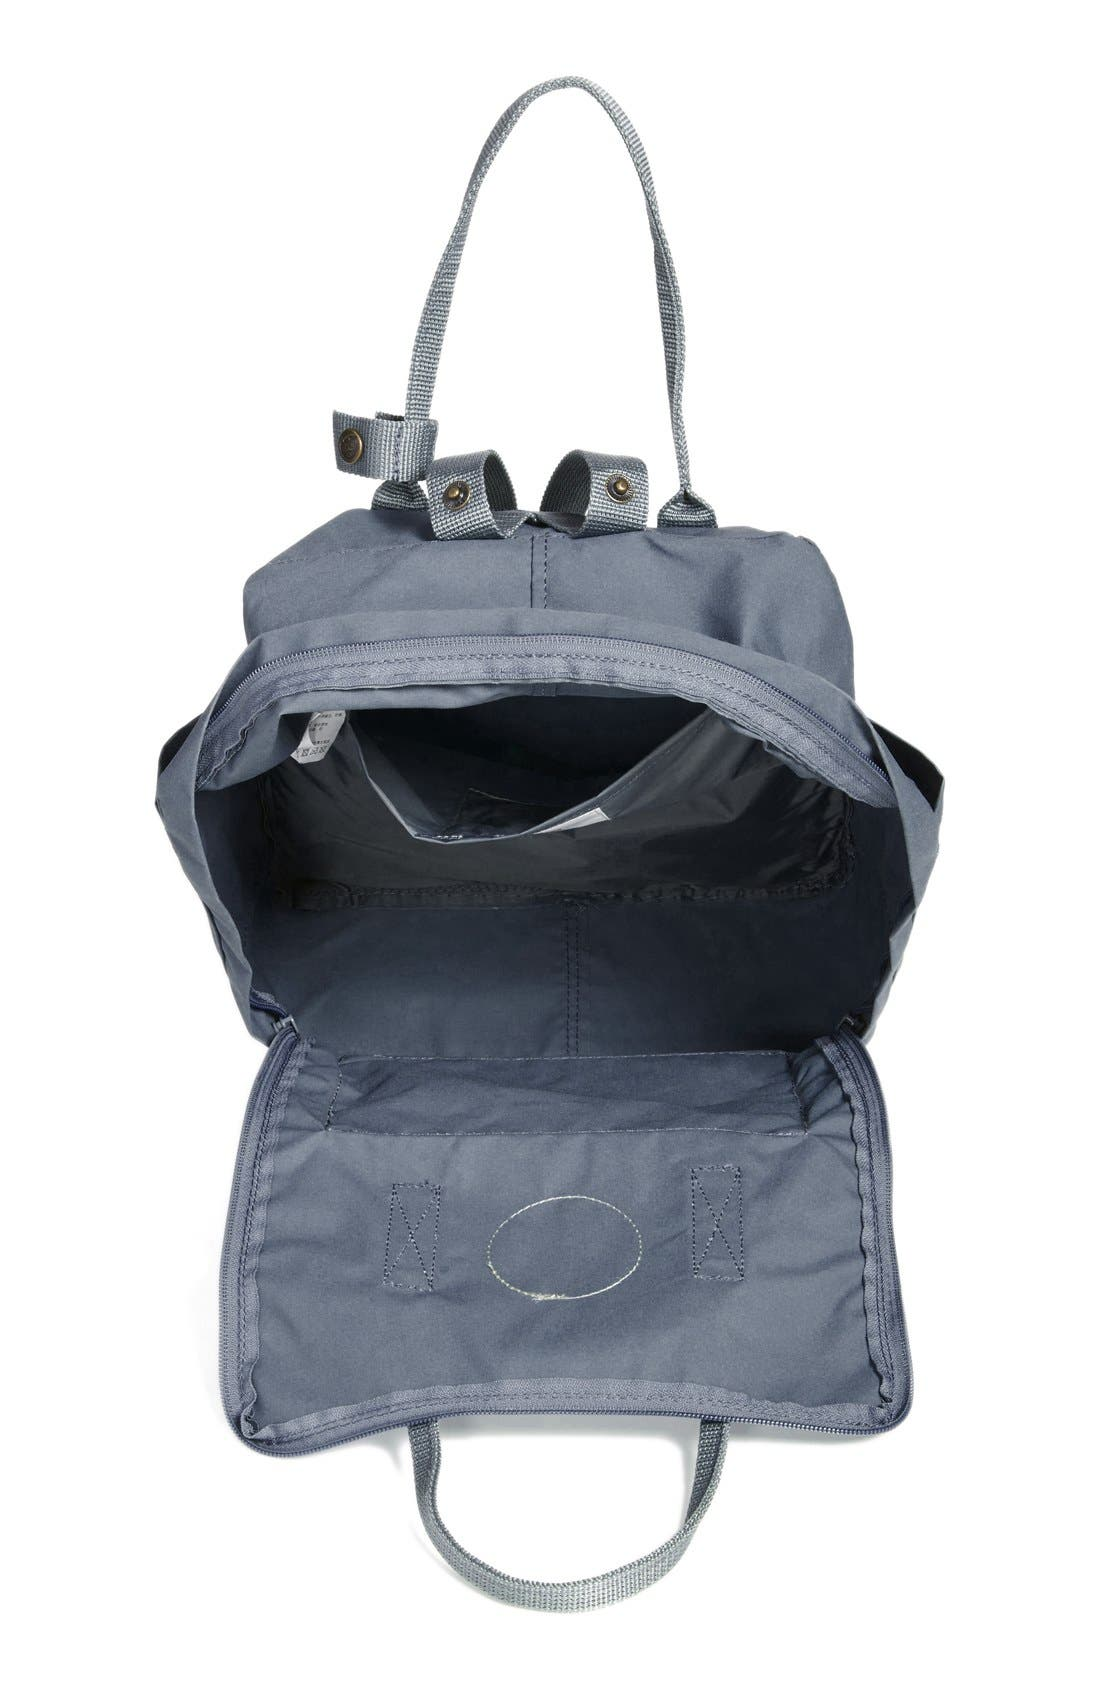 'Kånken' Water Resistant Backpack,                             Alternate thumbnail 9, color,                             022